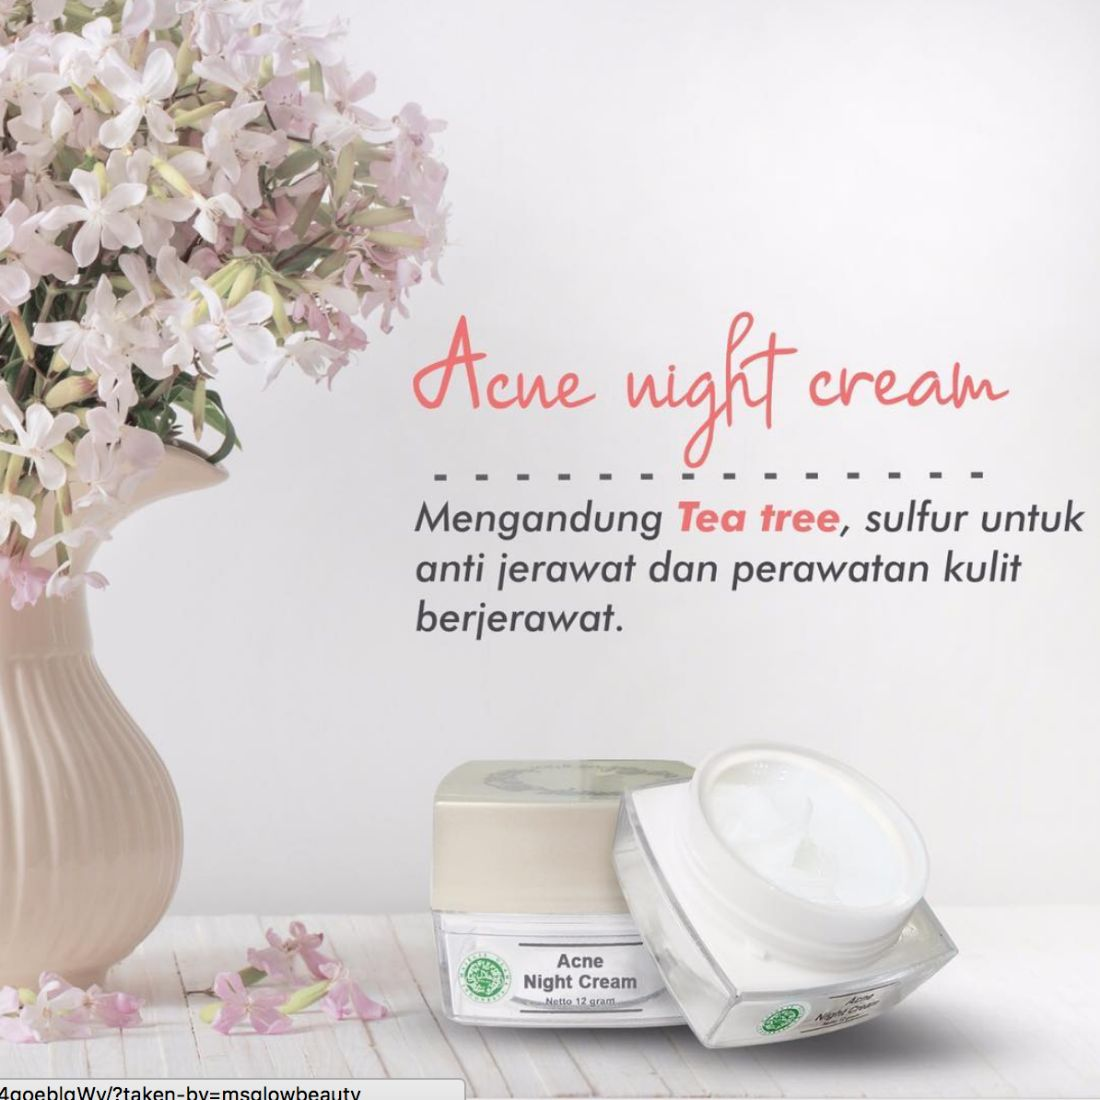 Acne Night Cream MS Glow